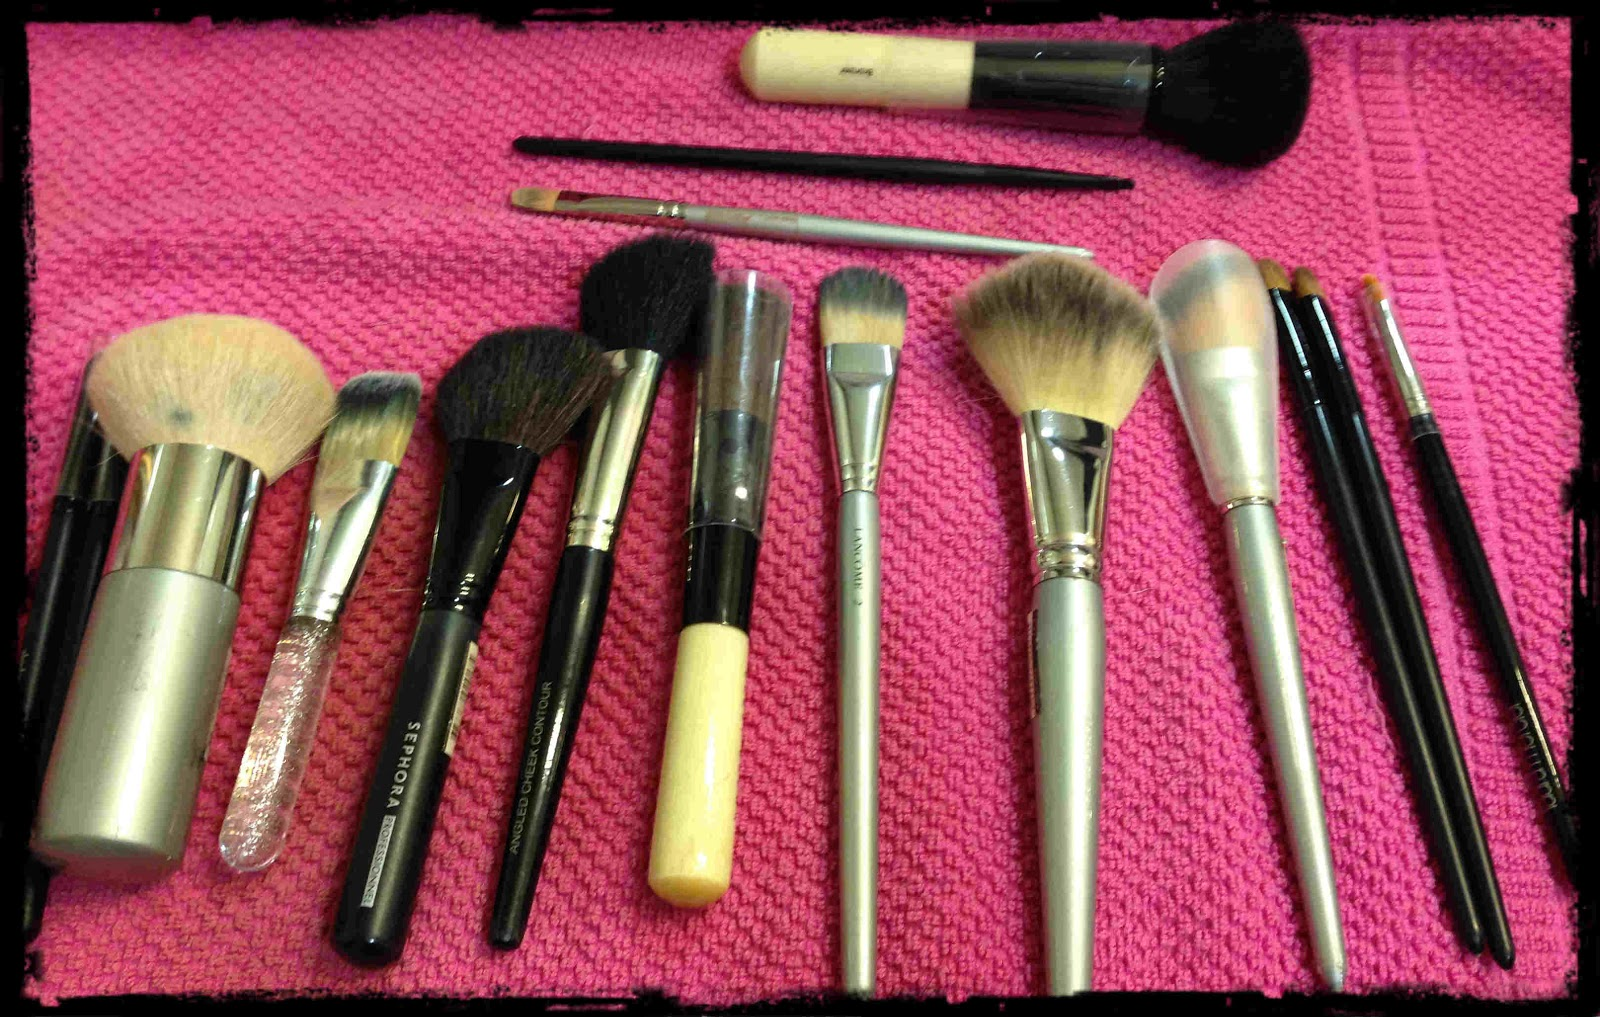 How often should you wash your makeup brushes